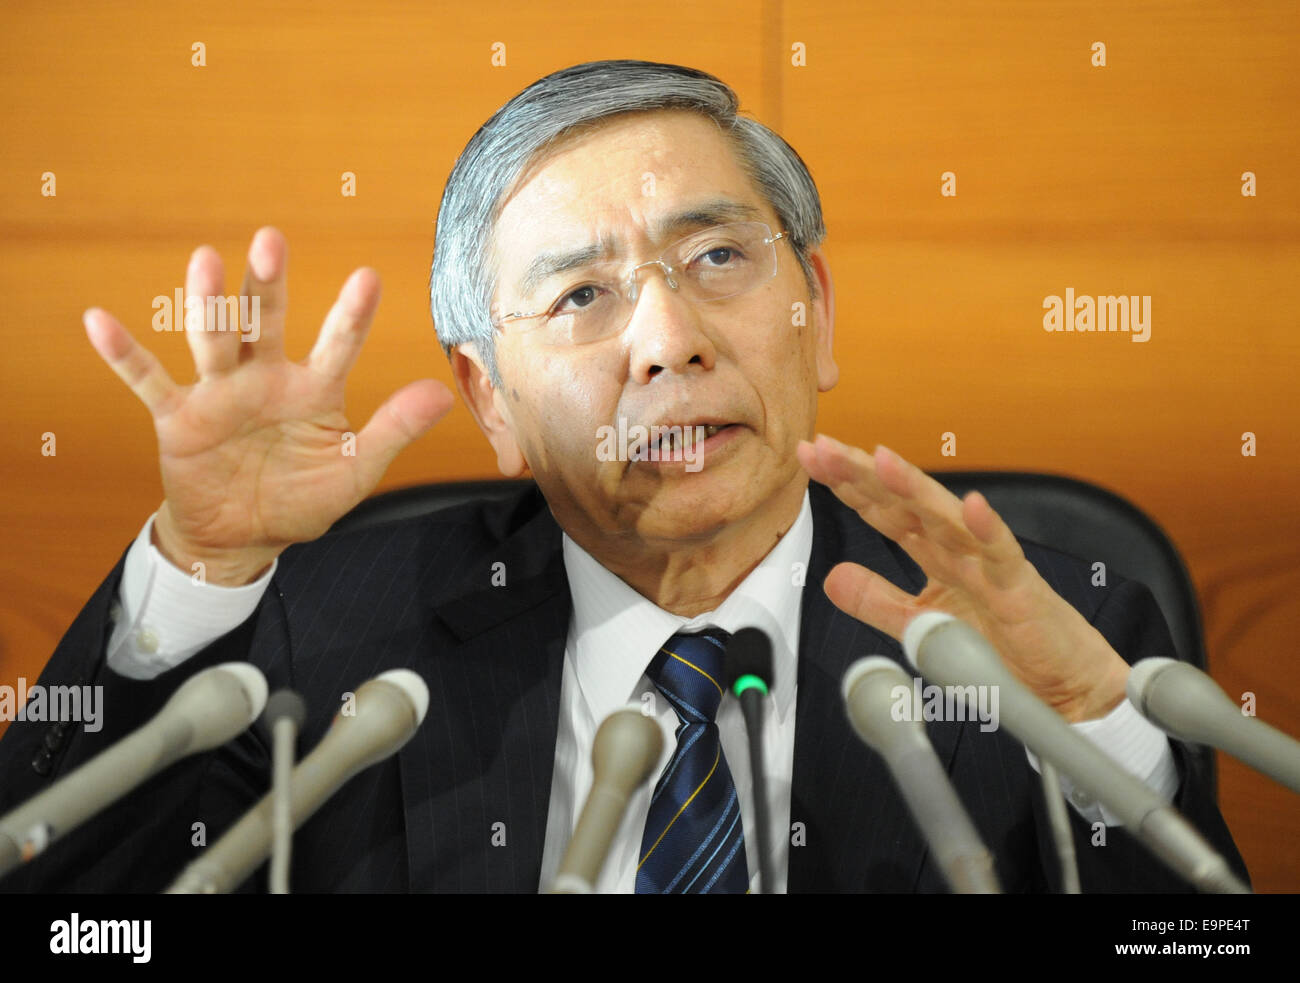 Tokyo, Japan. 31st Oct, 2014. Haruhiko Kuroda, governor of the Bank of Japan (BOJ), attends a press conference at - Stock Image